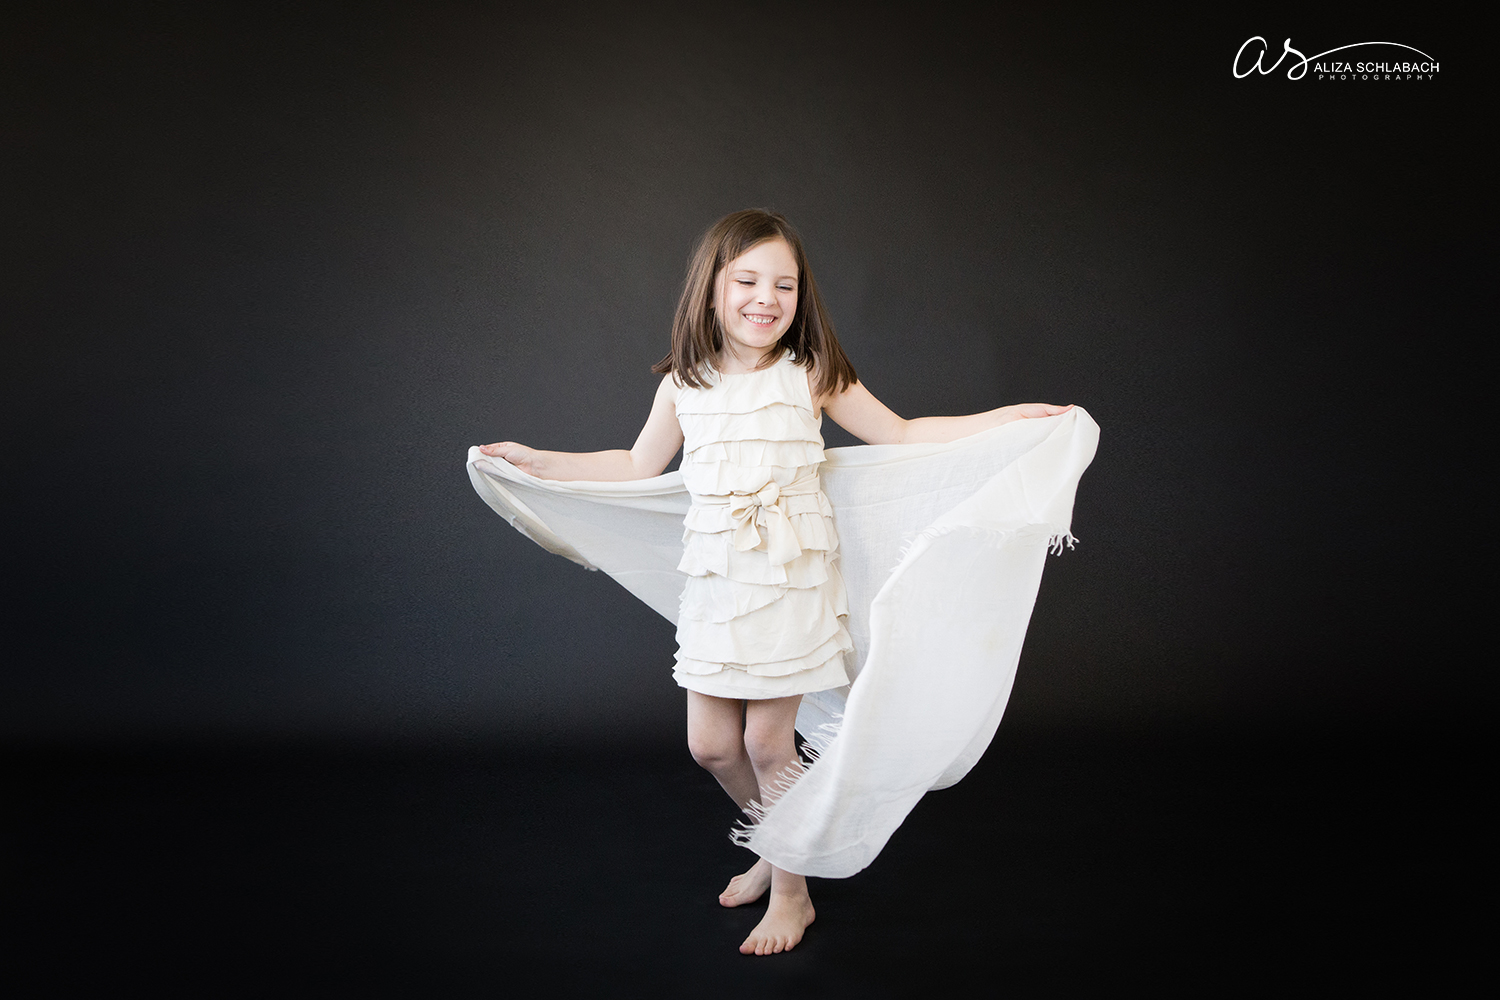 Photo of little girl dancing with a scarf